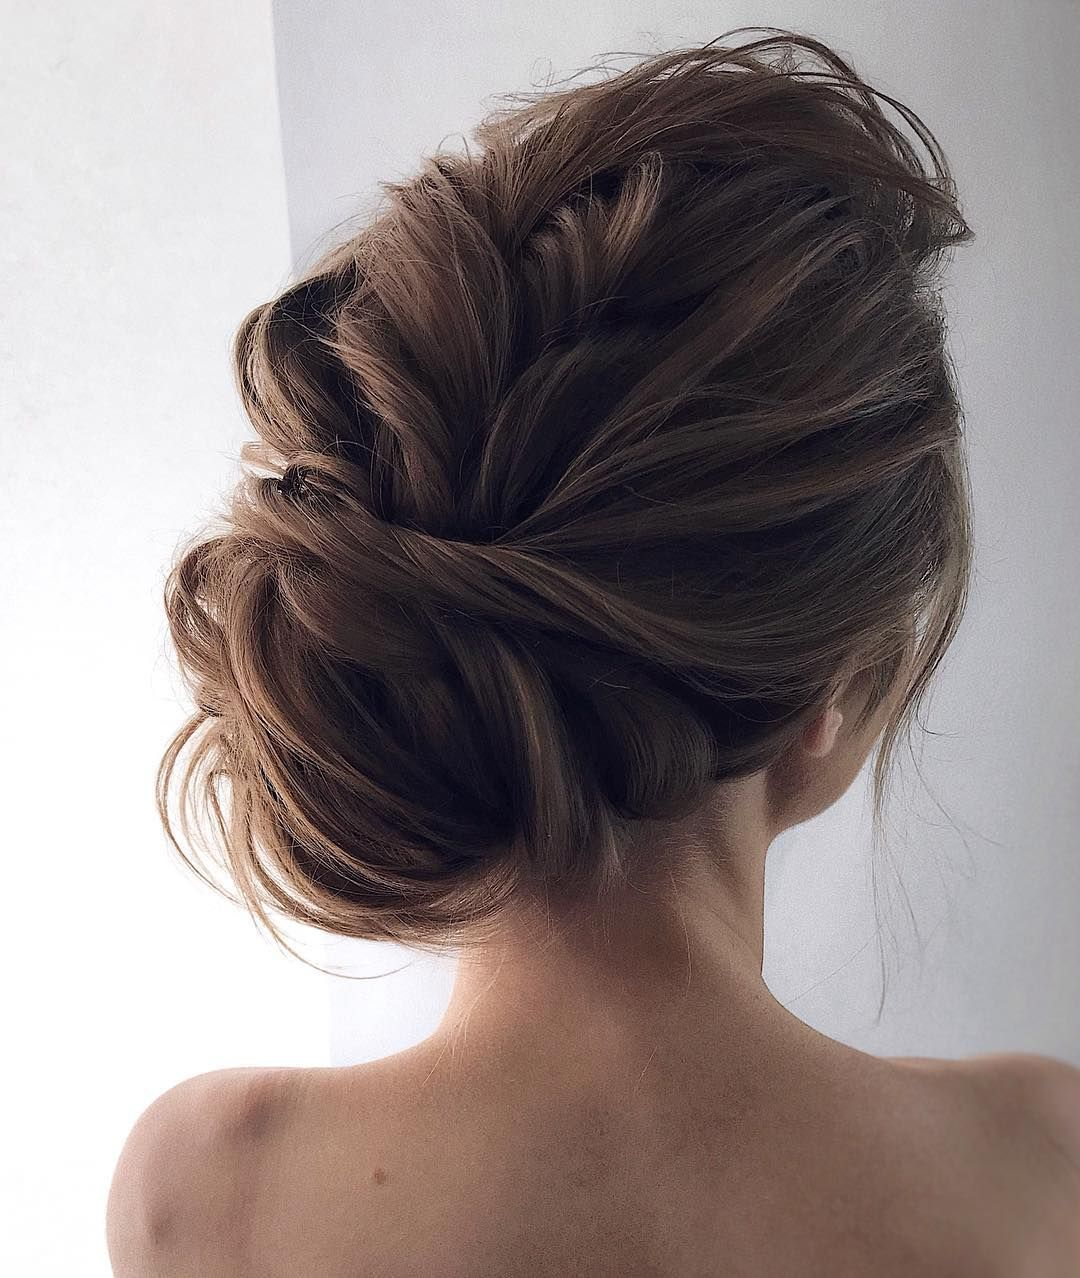 Gorgeous Wedding Updo Hairstyle To Inspire You hair Pinterest